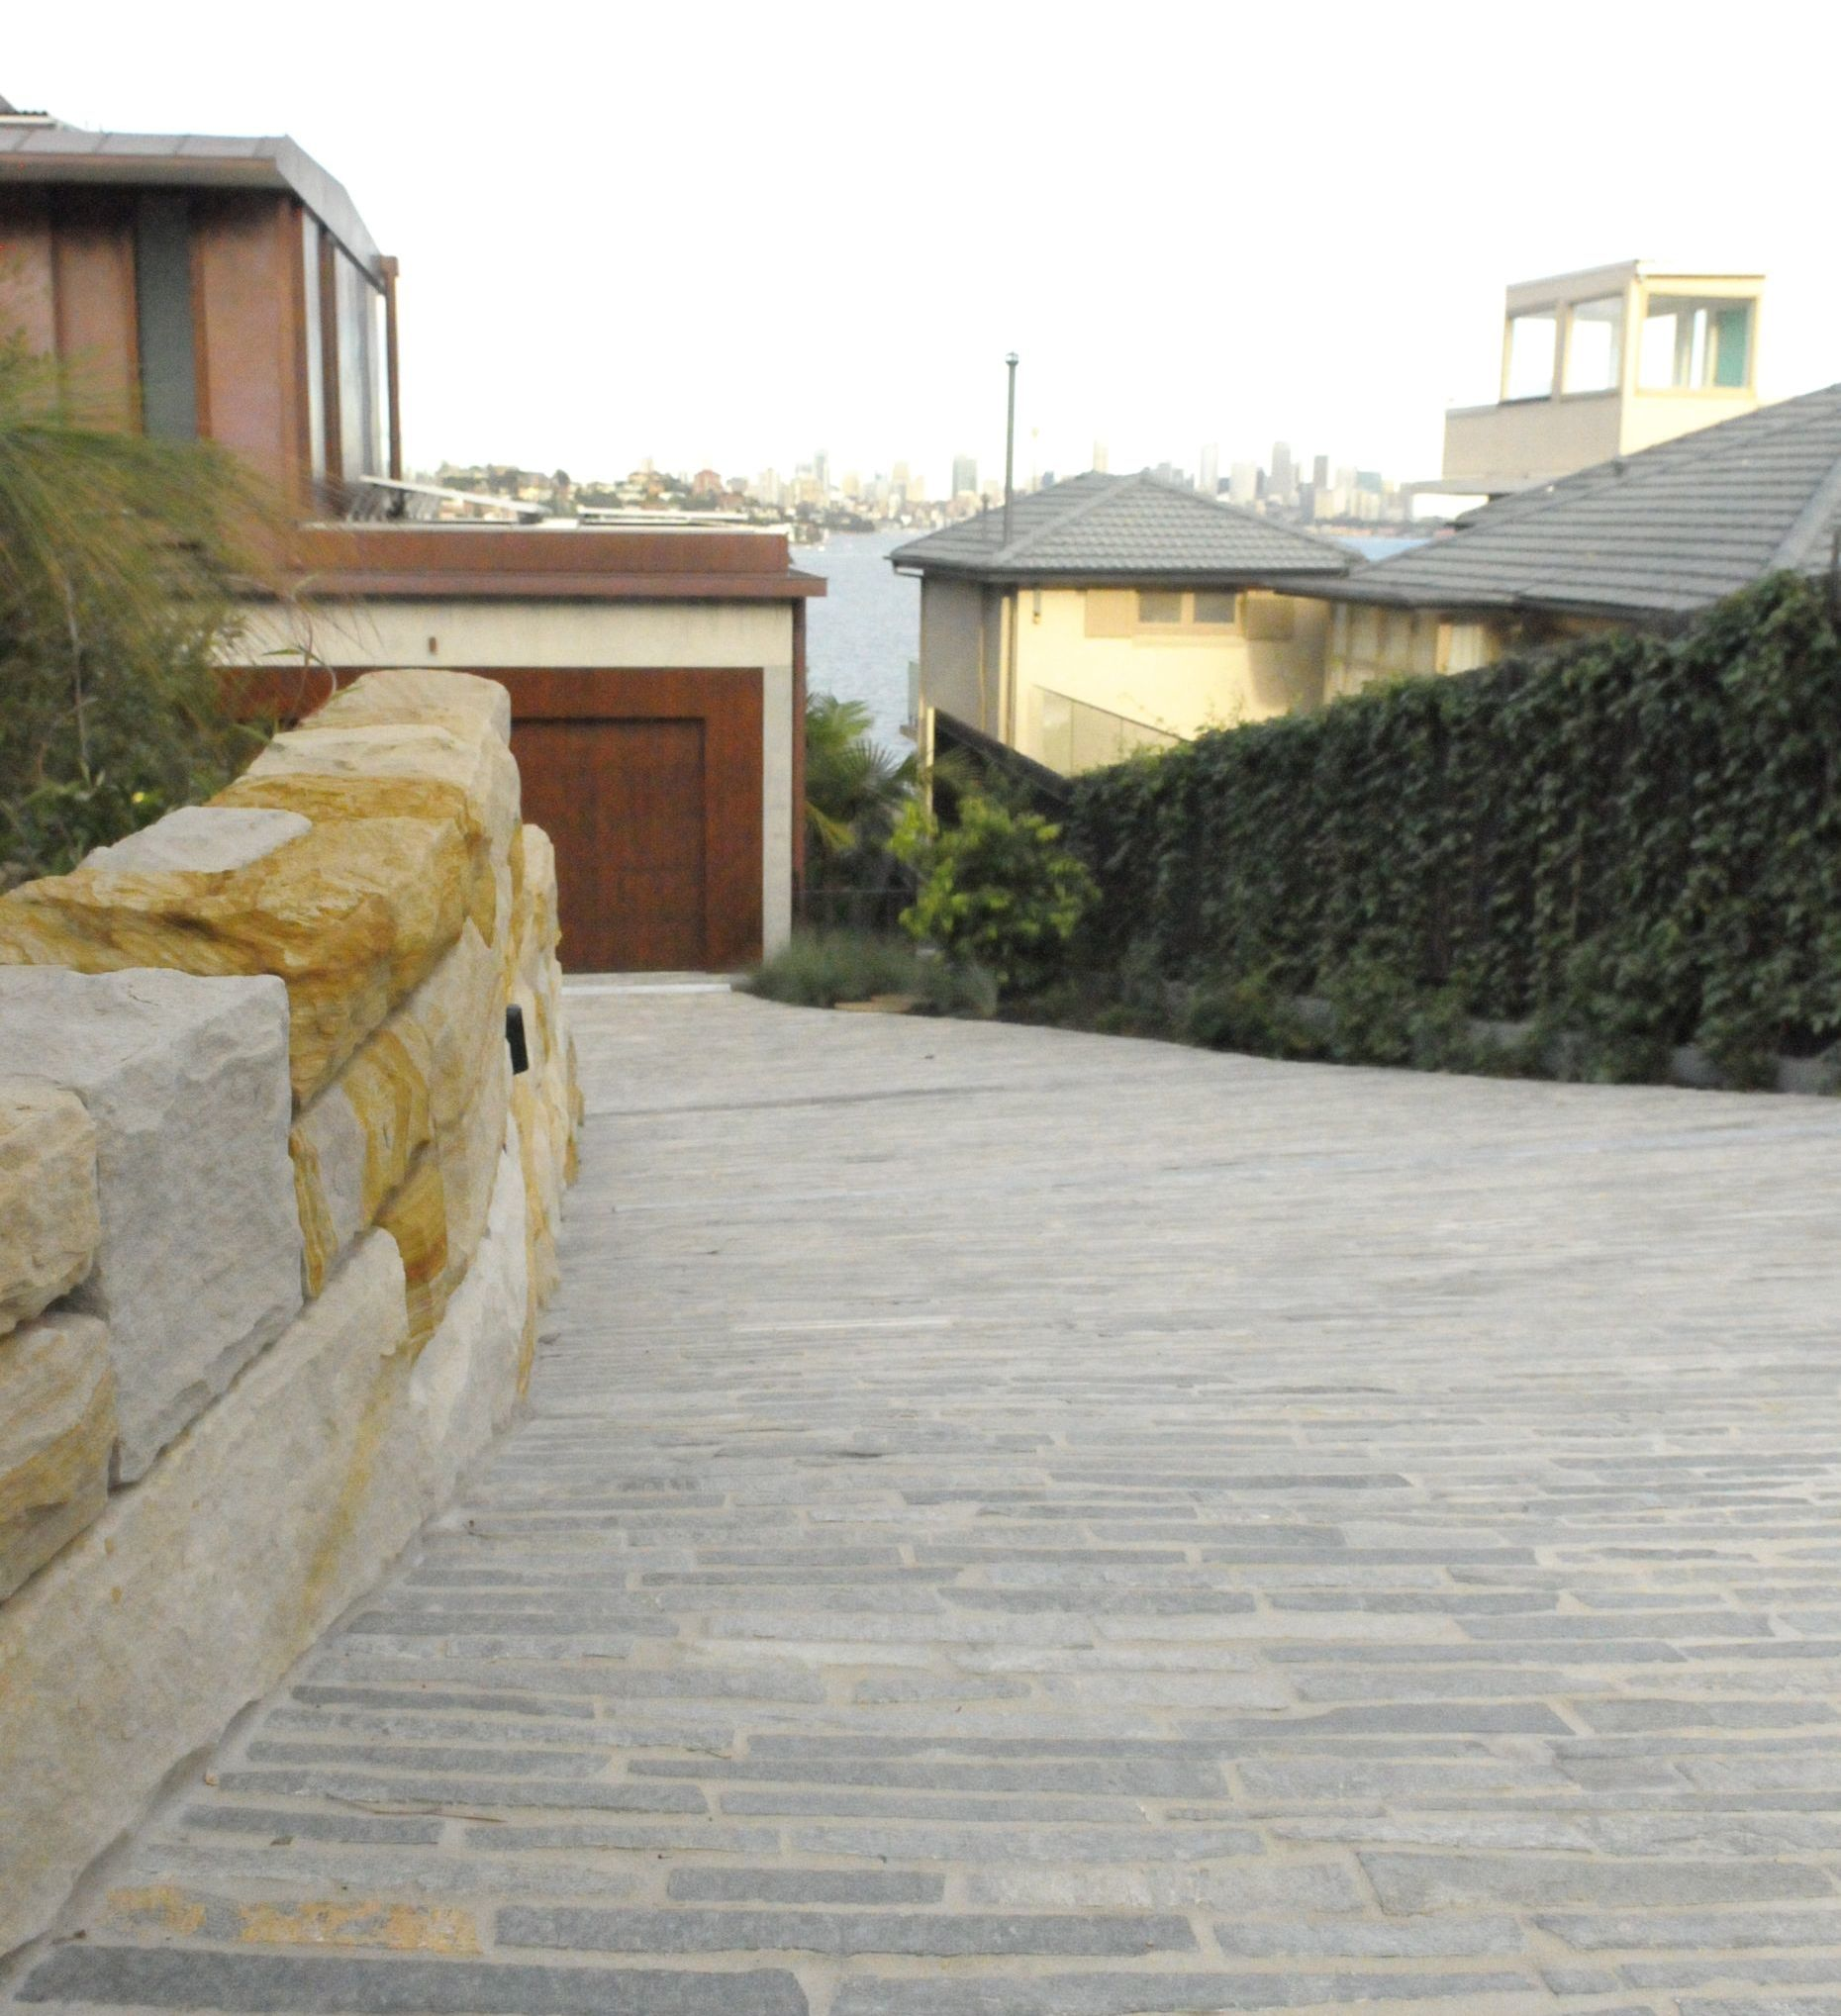 Eco Outdoor Endicott Filetti flooring used in an organic home driveway application